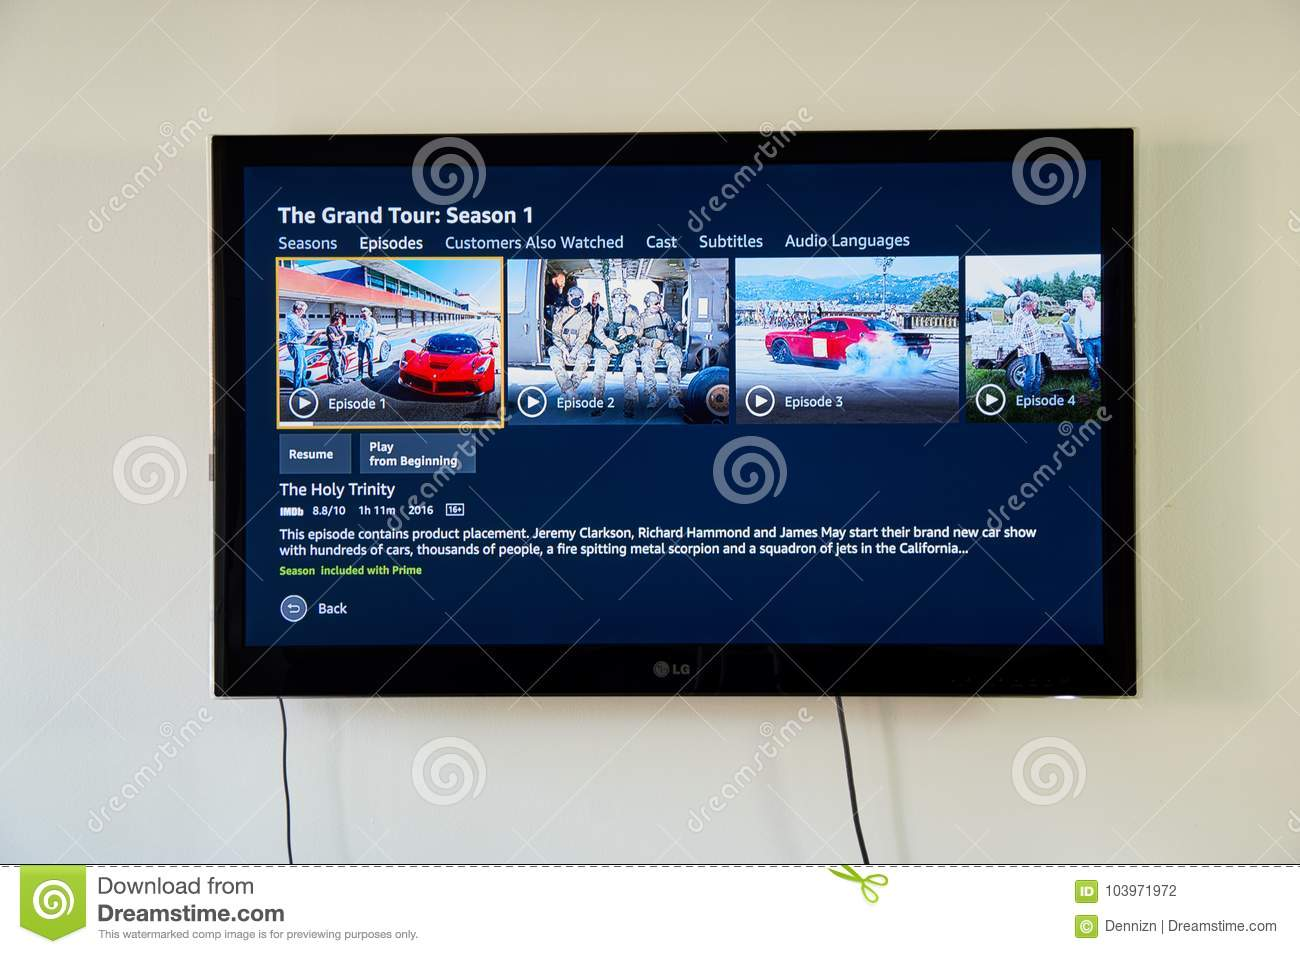 The Grand Tour on LG TV editorial photography  Image of